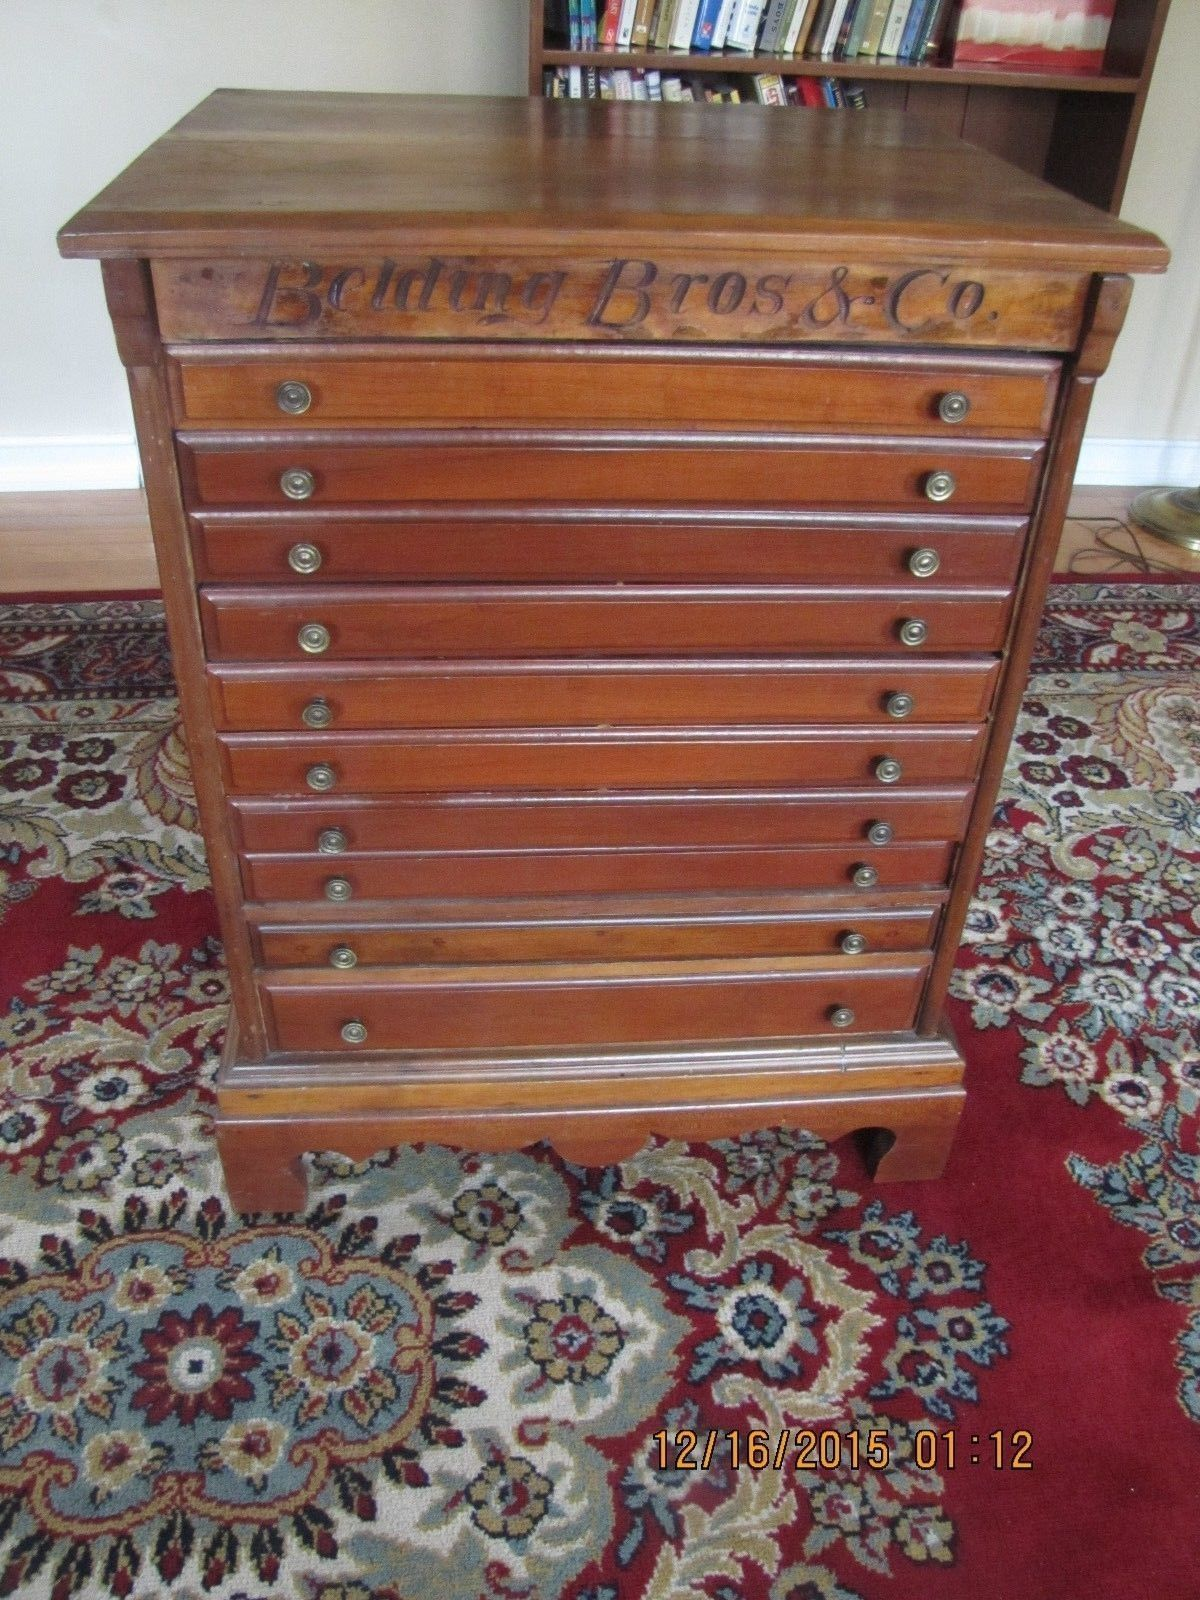 Antique Cherry 10 Drawer Belding Bros Spool Thread Cabinet Country Store Antiques Belding Country Store Display